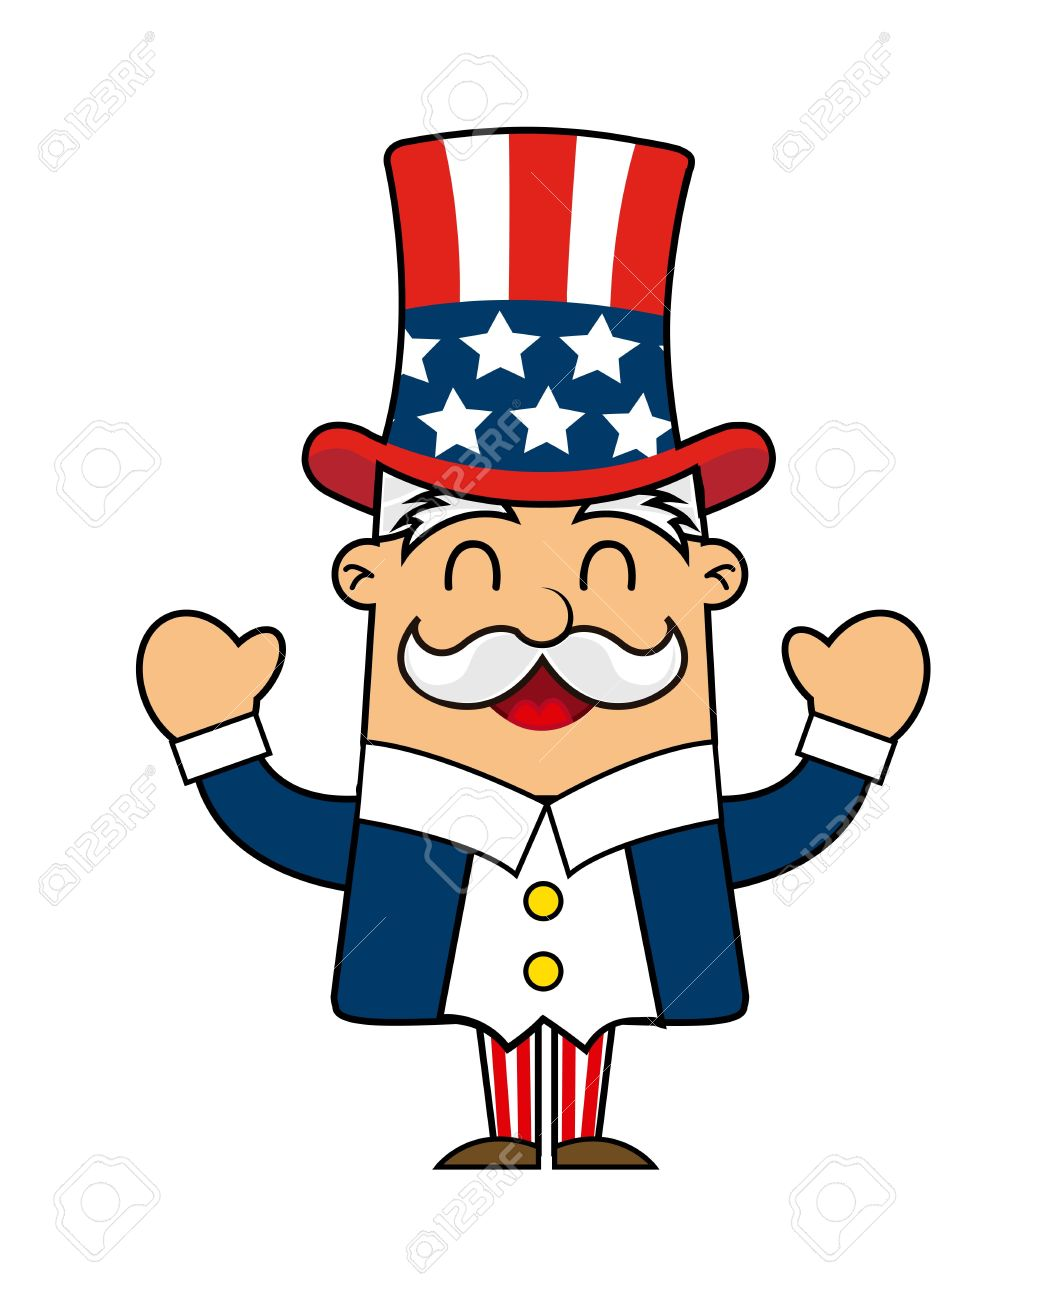 uncle sam cartoon isolated over white background vector royalty rh 123rf com uncle sam vector download uncle sam vector free download